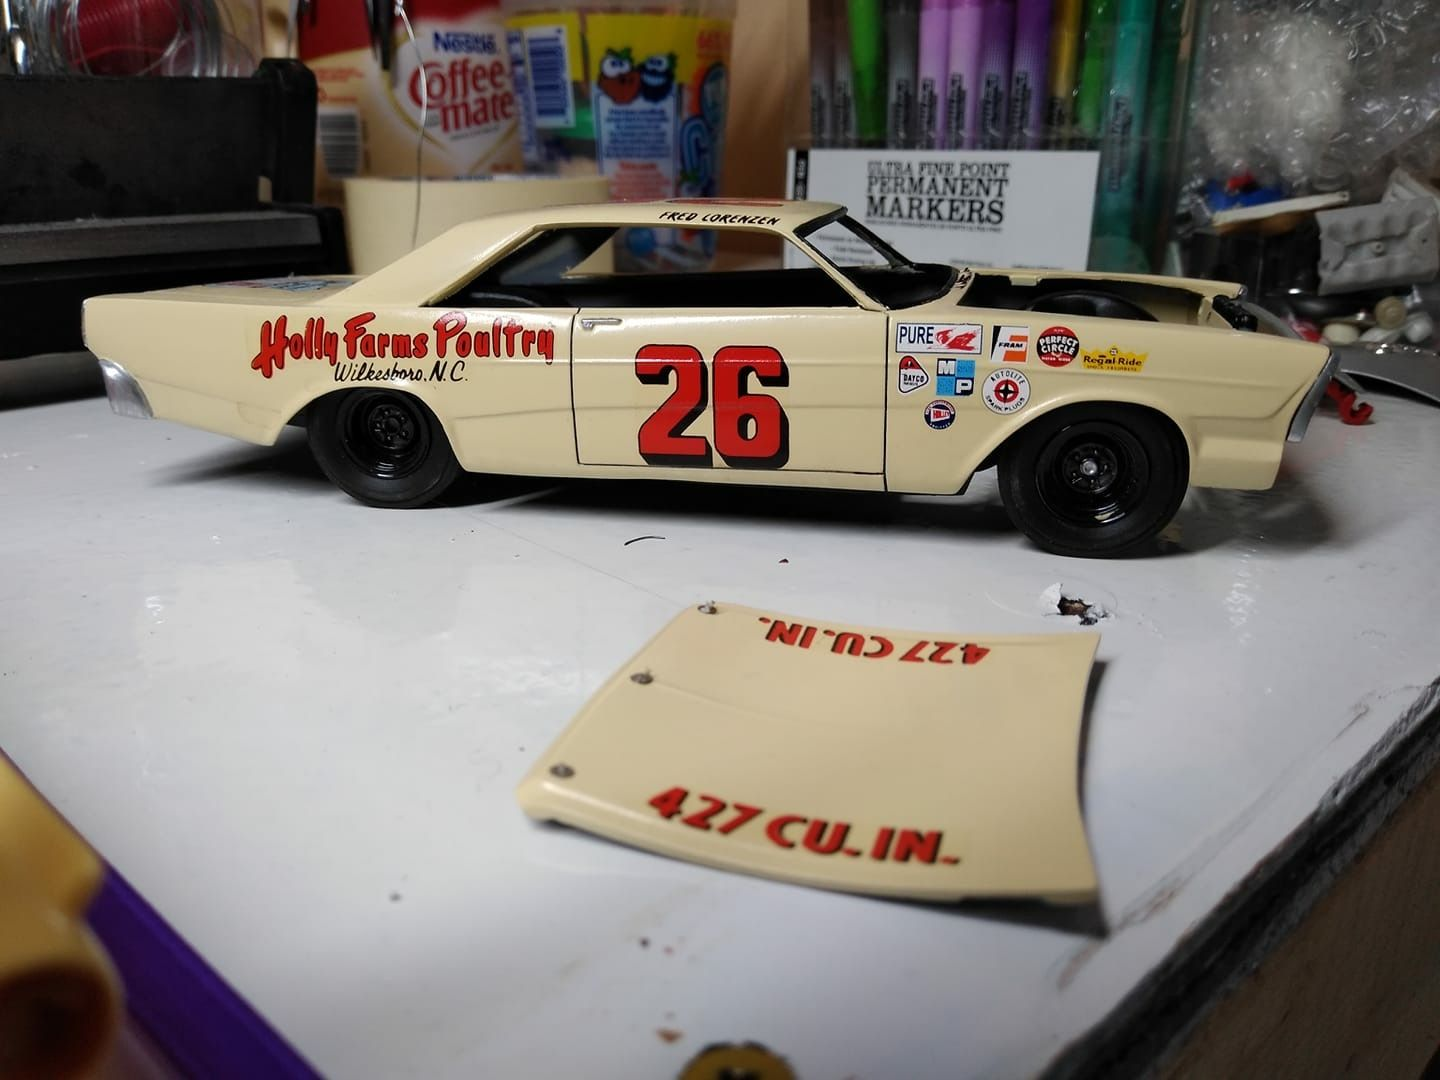 Pin By Bill On Models Car Model Scale Models Cars Nascar Racing